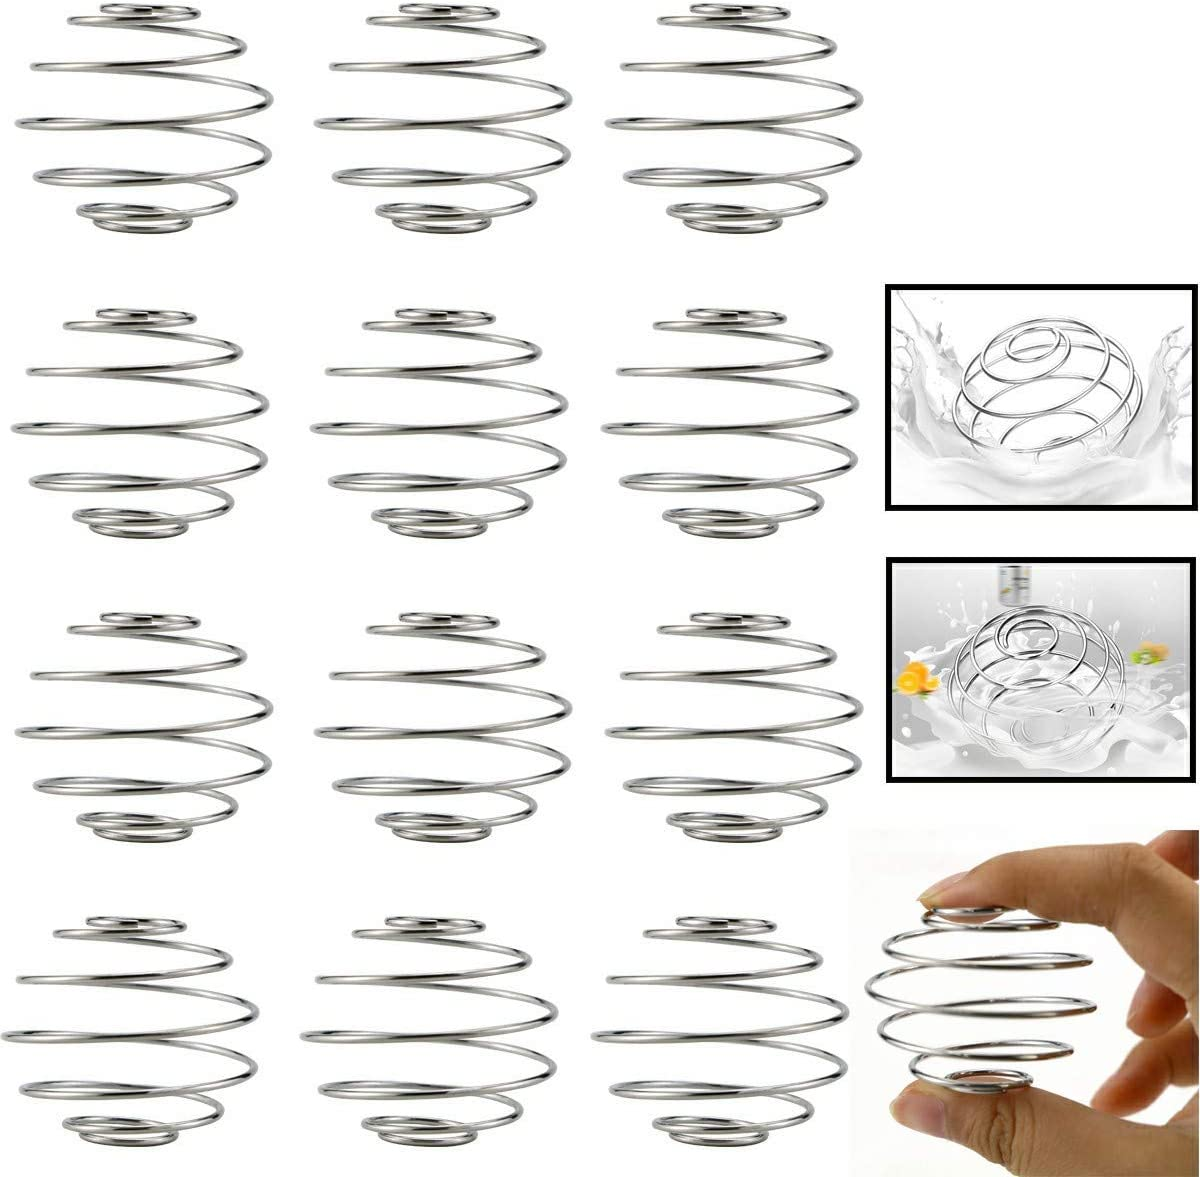 Heatoe 12 Pcs Milkshake Protein Shaker Ball Stainless Whisk Mixing Ball Wire Mixer Blender Ball Cup Bottle Whisk Ball For Protein Shakes Food Grade Stainless Steel